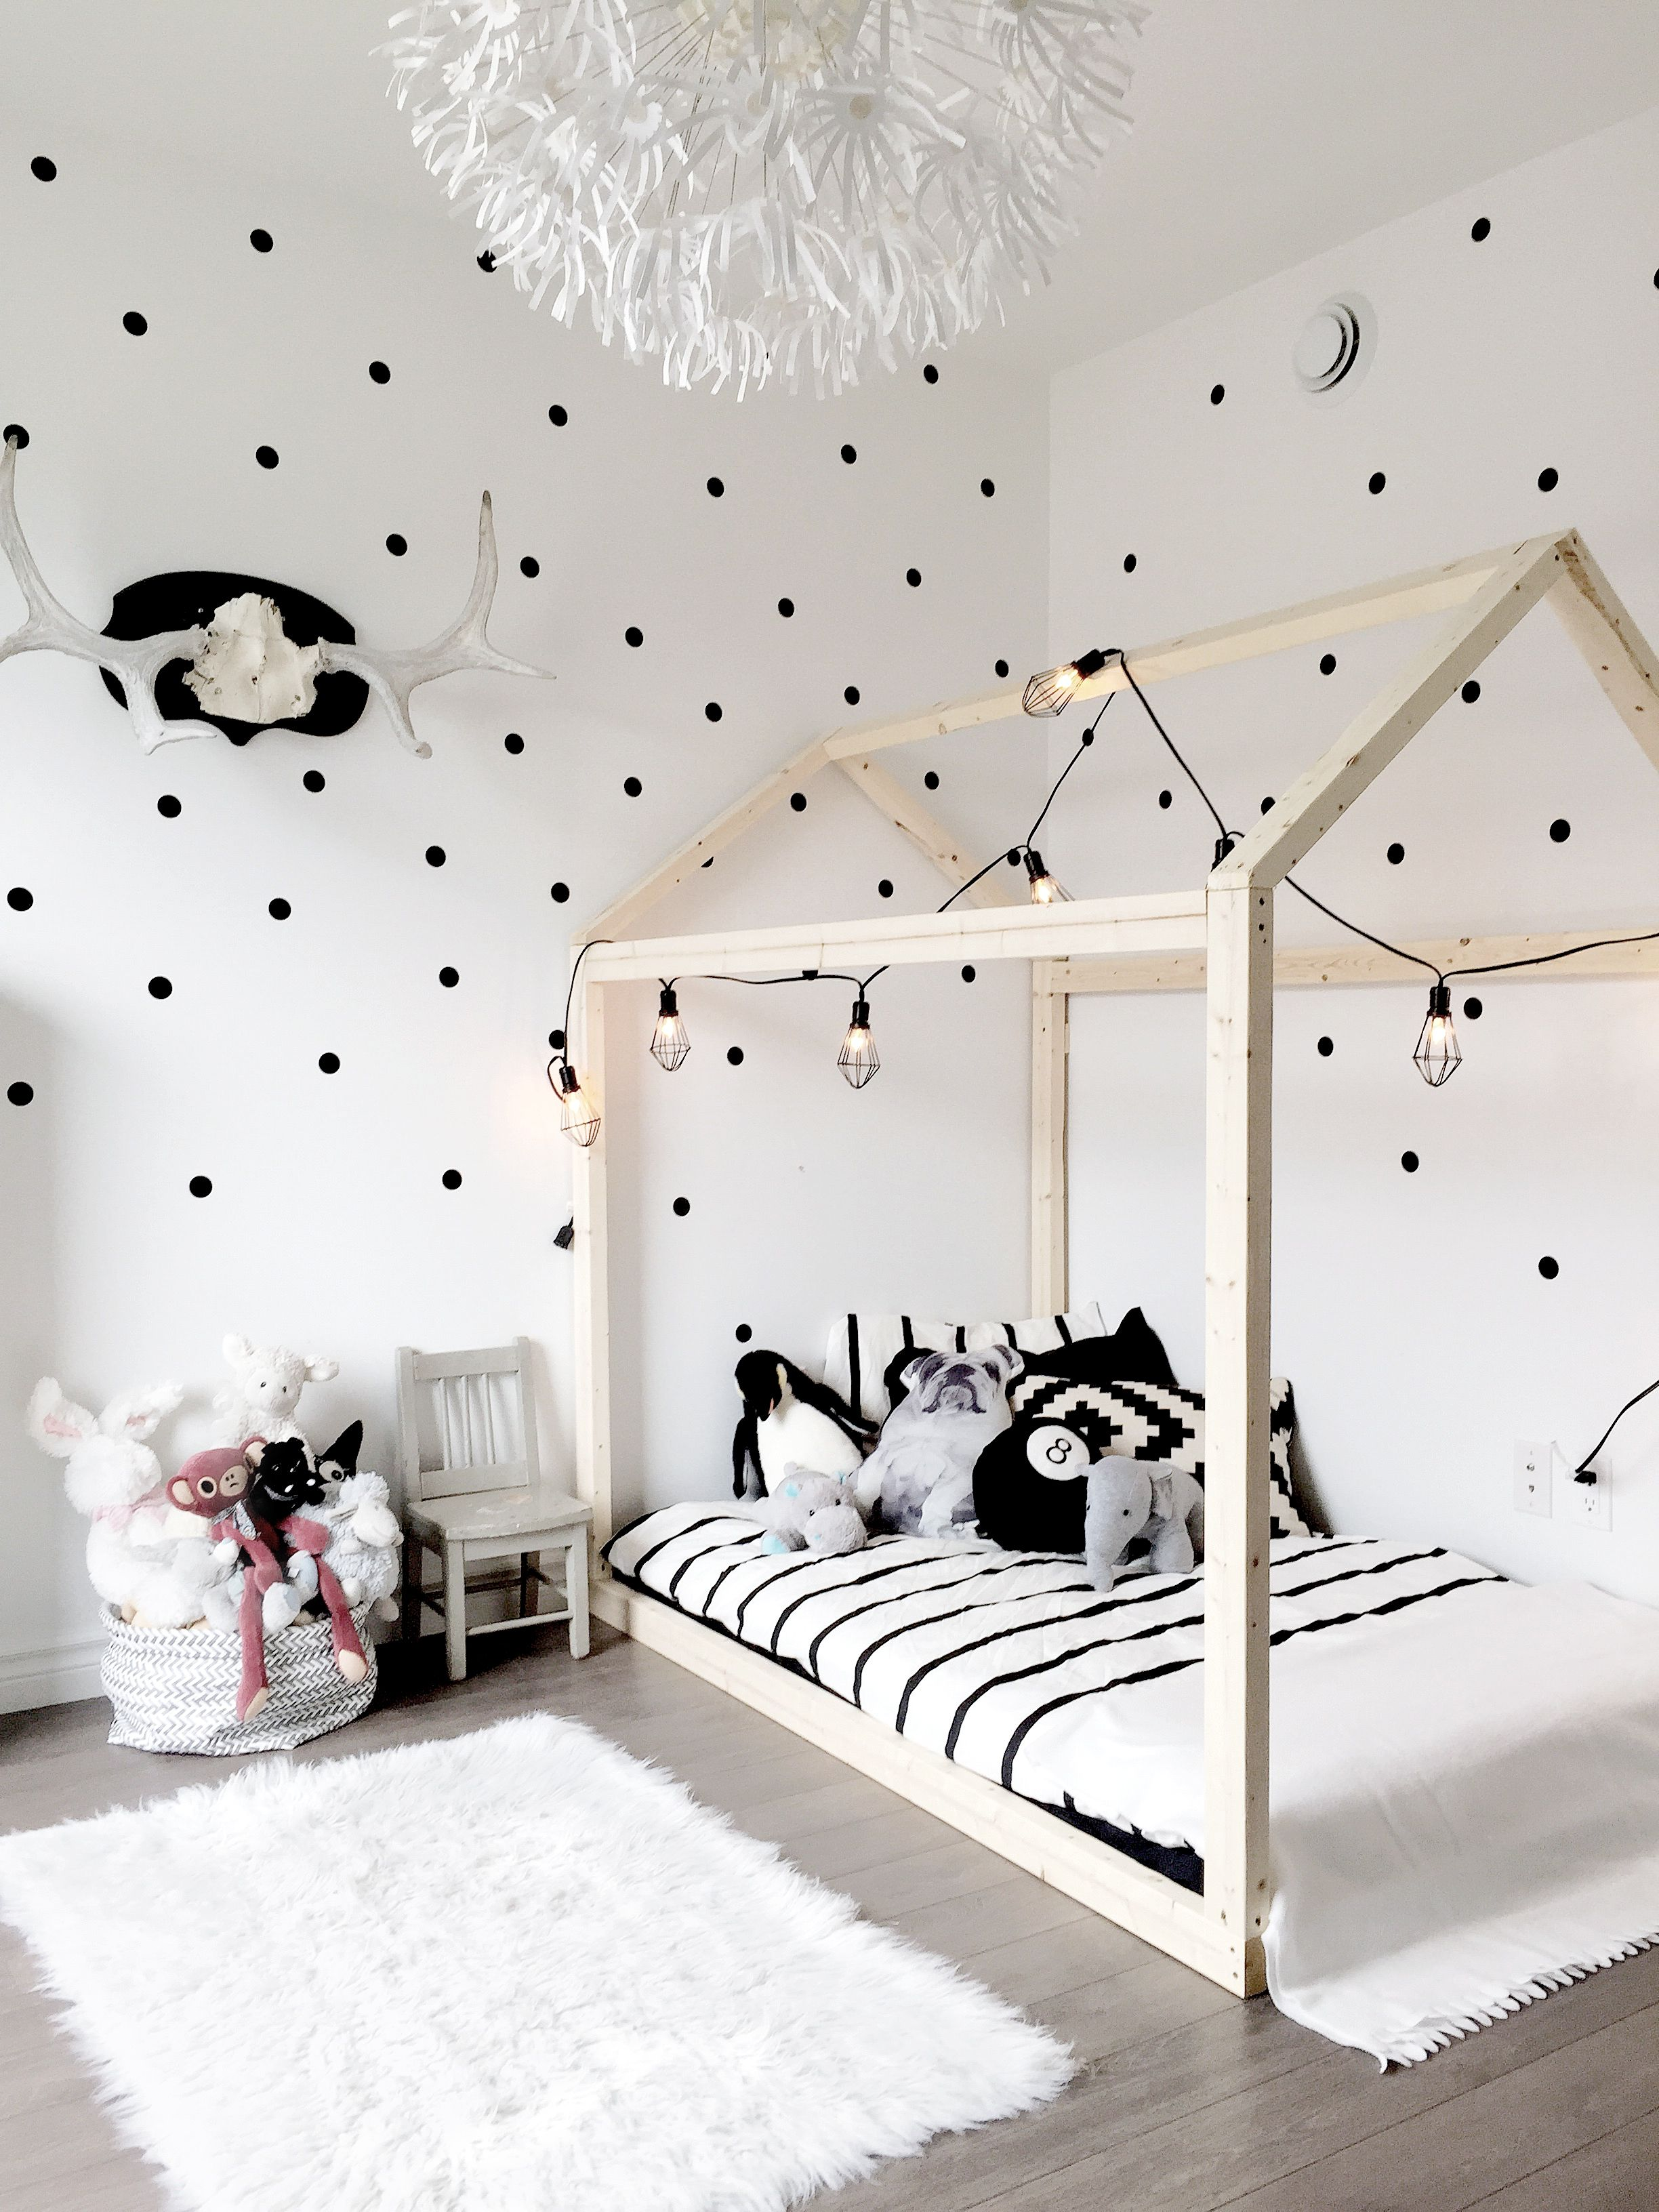 Kids Bedroom Black And White nursery decor, scandinavian nursery, house bed, polka dot wall